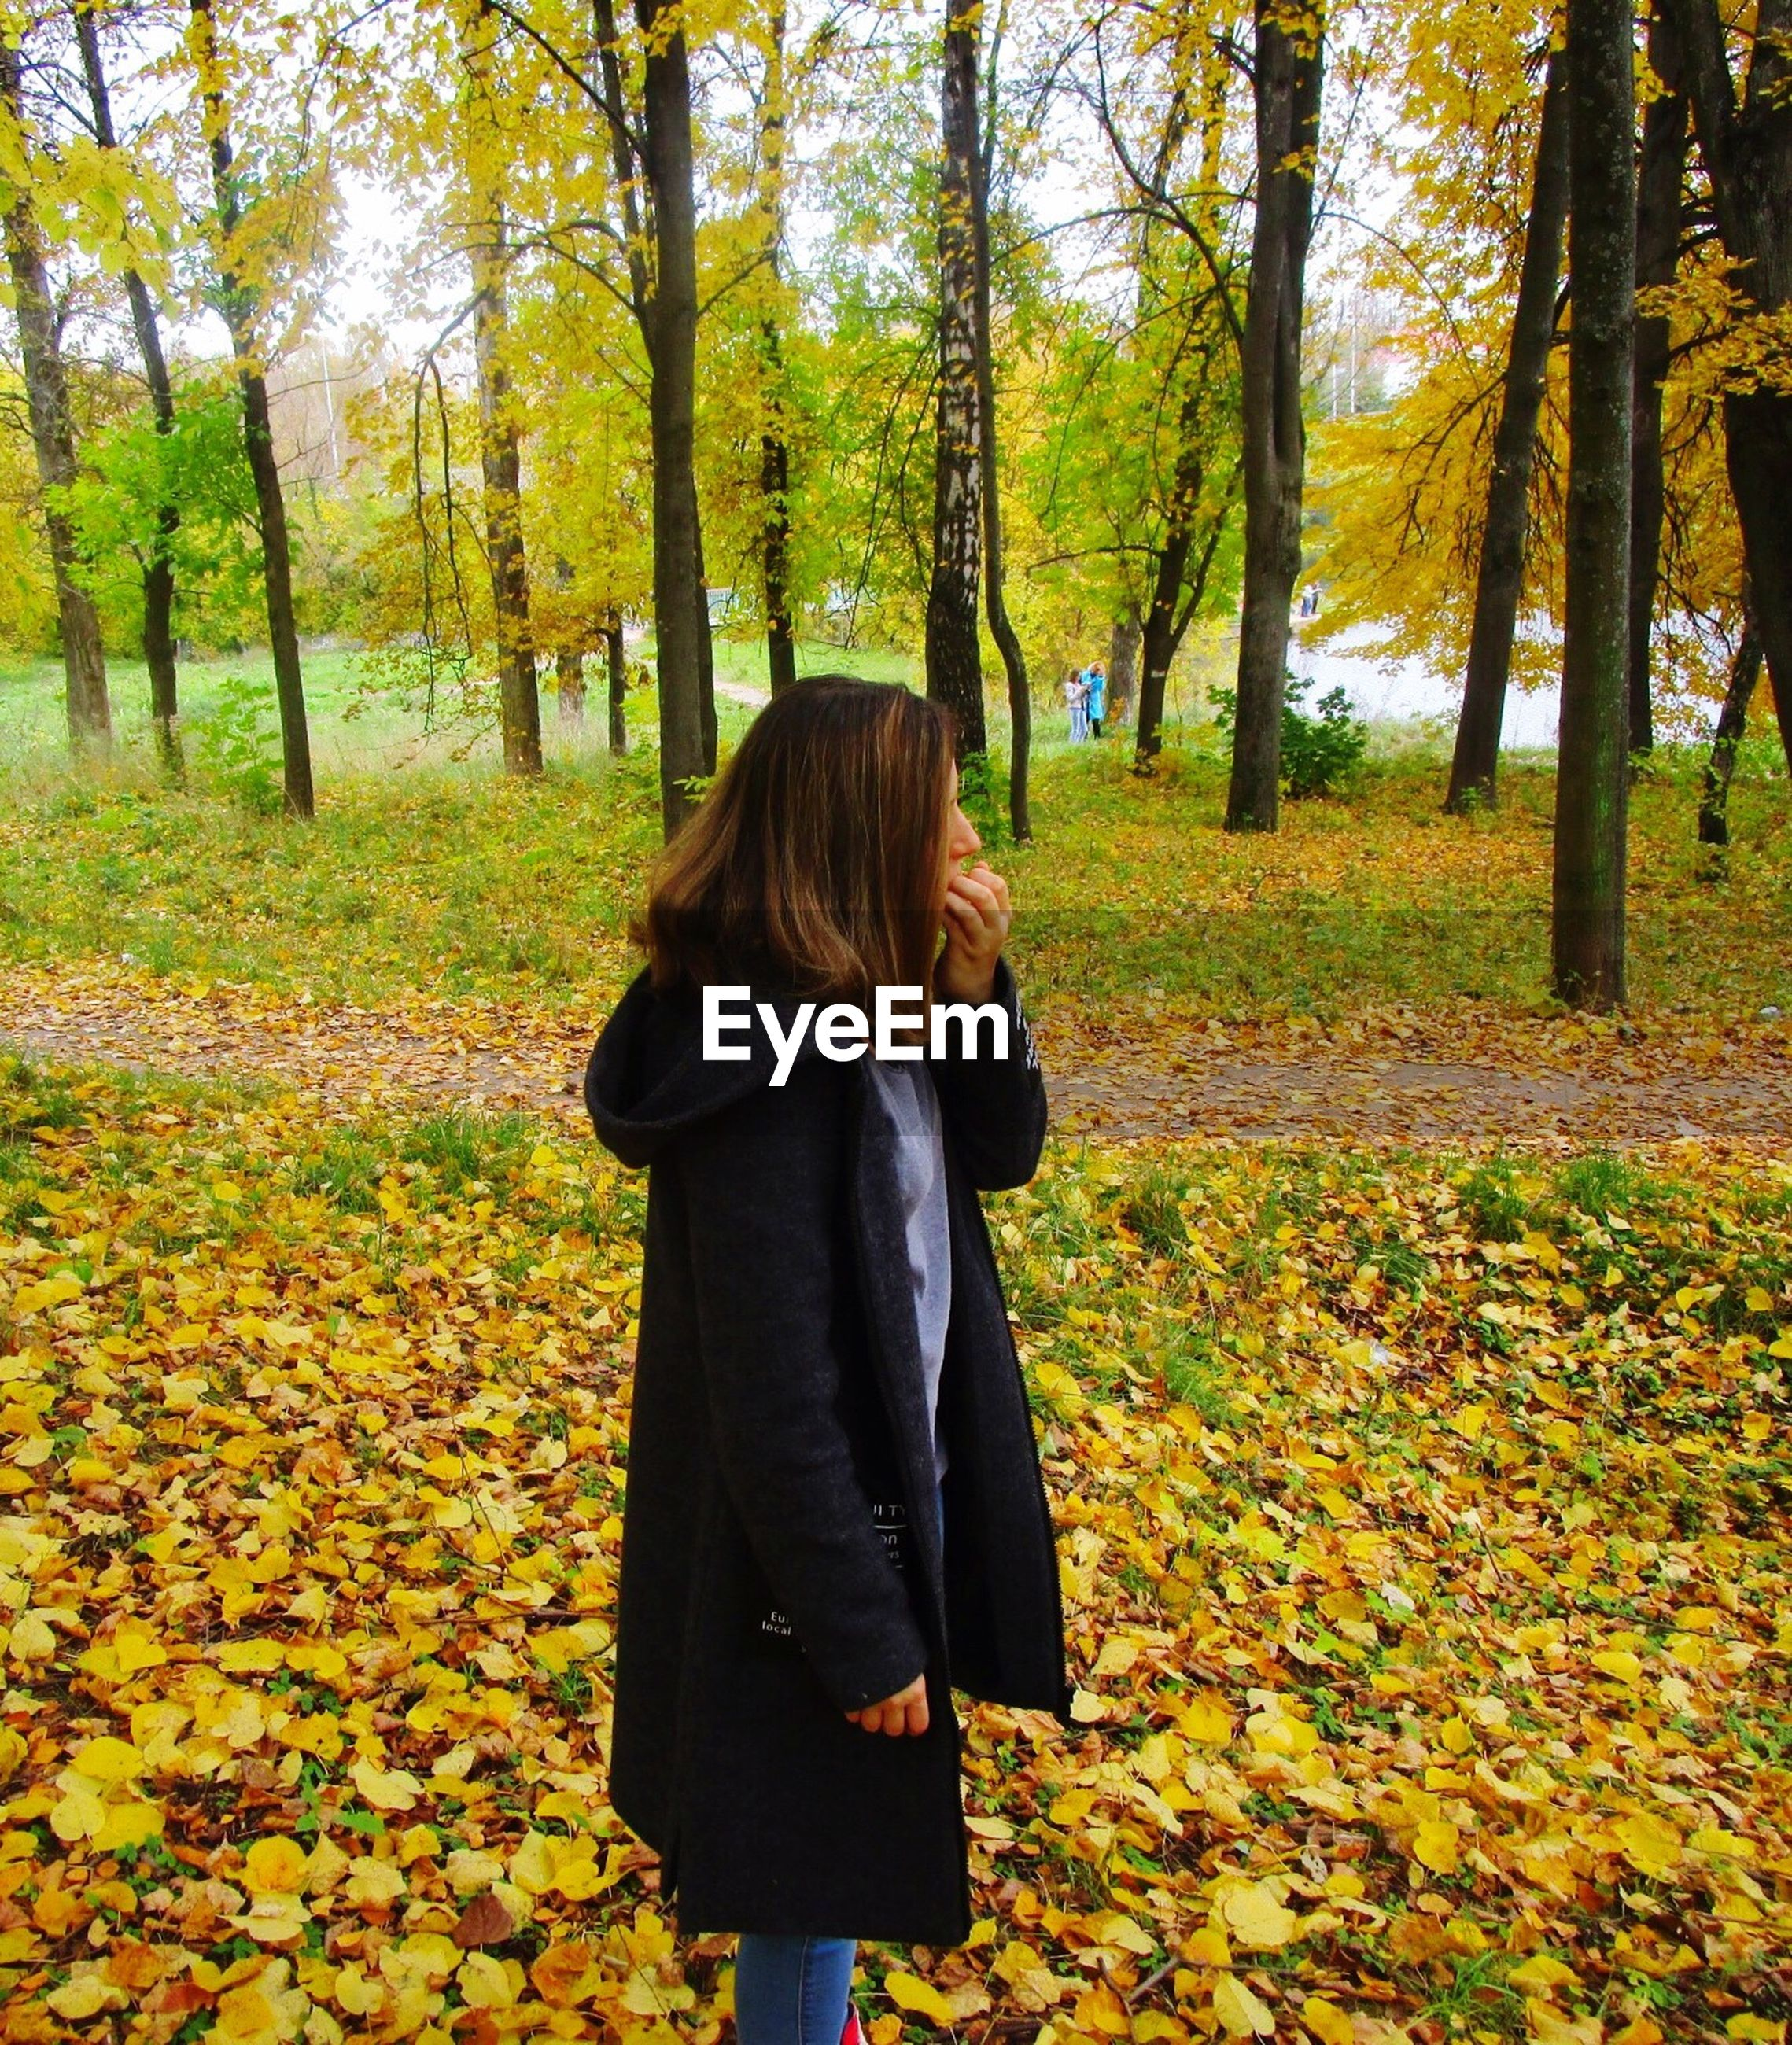 rear view, leaf, autumn, tree, season, change, leisure activity, standing, tree trunk, leaves, park - man made space, lifestyles, footpath, person, day, casual clothing, field, park, green color, nature, tourist, abundance, tranquility, tranquil scene, growth, outdoors, scenics